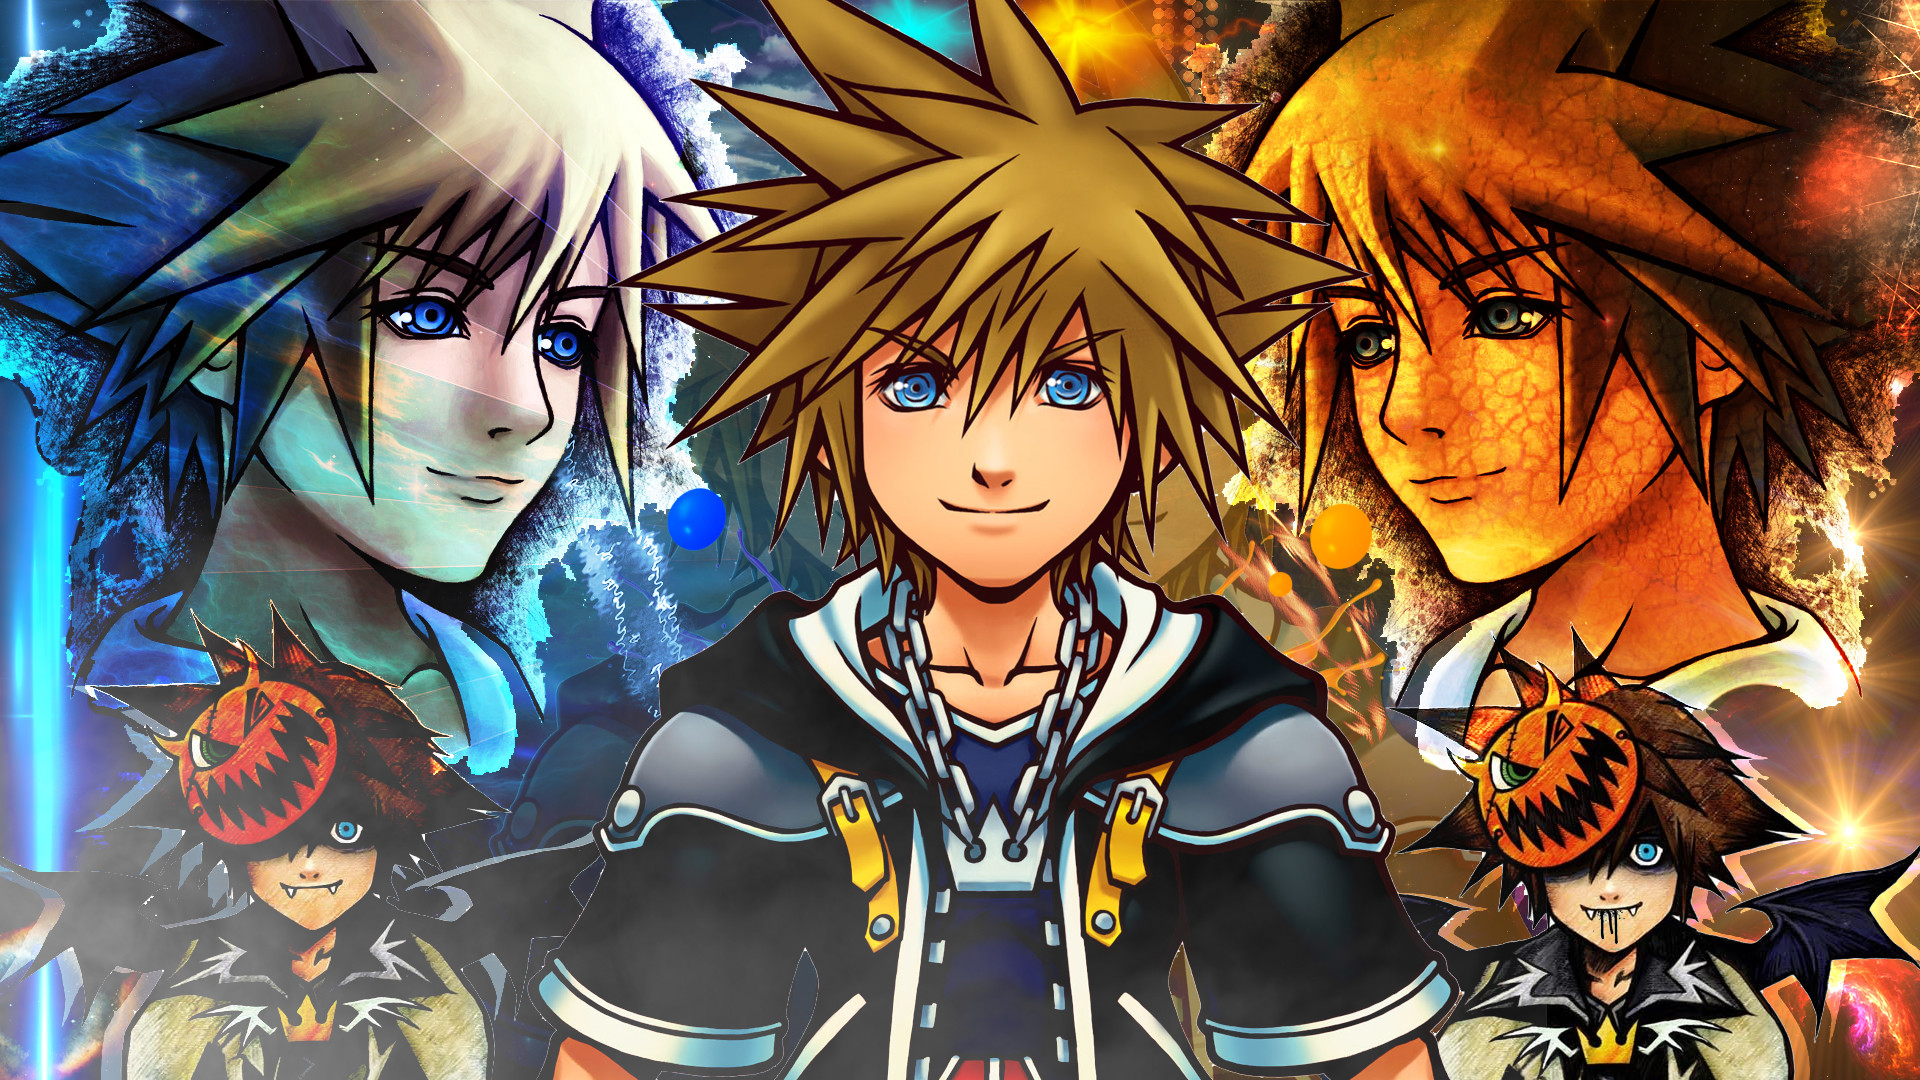 1920x1080 ... Kingdom Hearts 2 Sora Wallpaper by Soraa-game